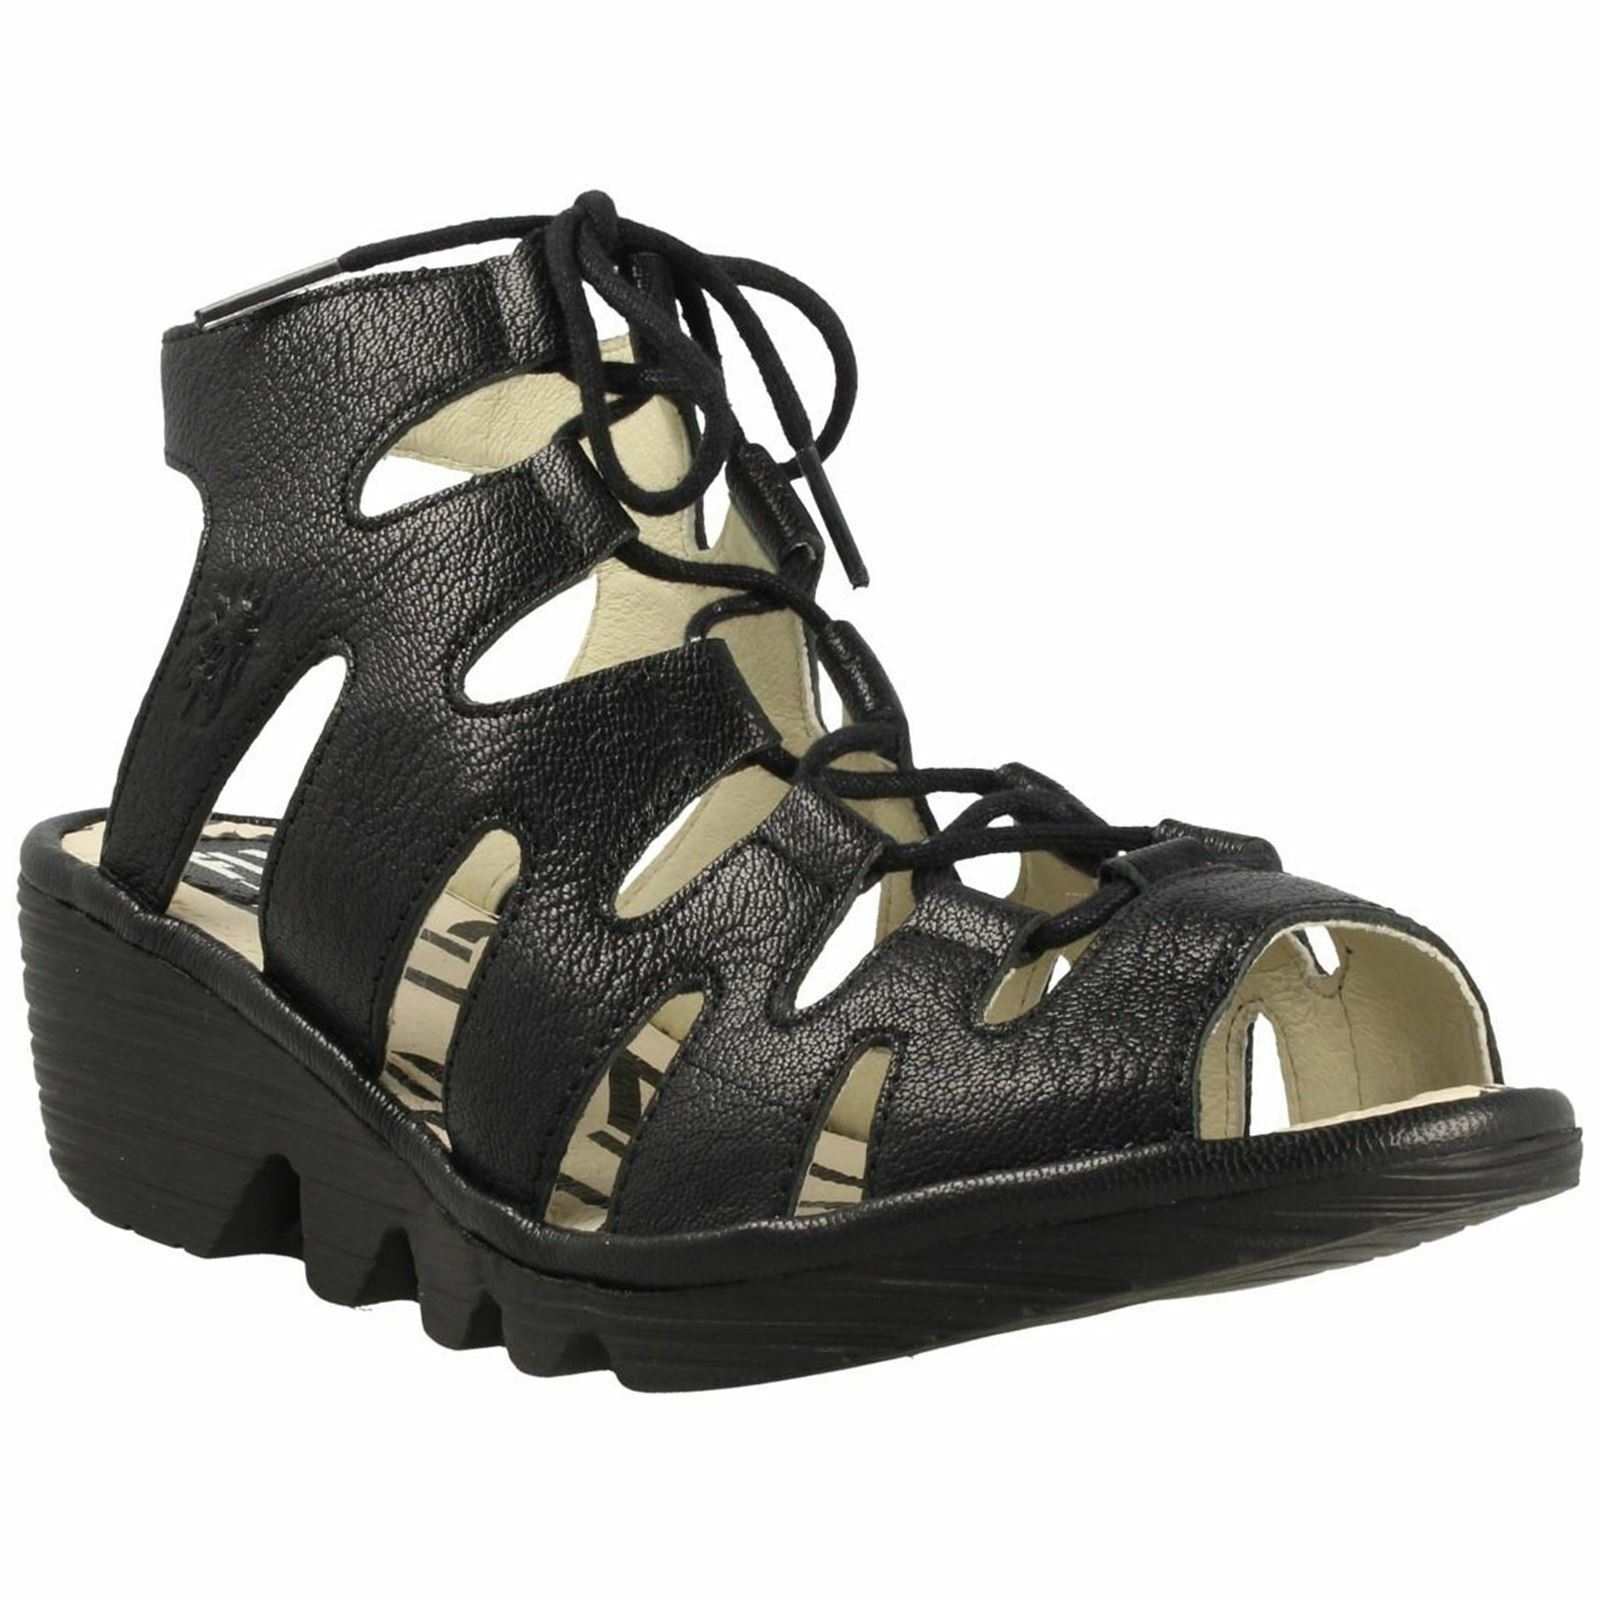 Fly London Port 813 Black Womens Leather Lace-Up Wedge Strappy Sandals